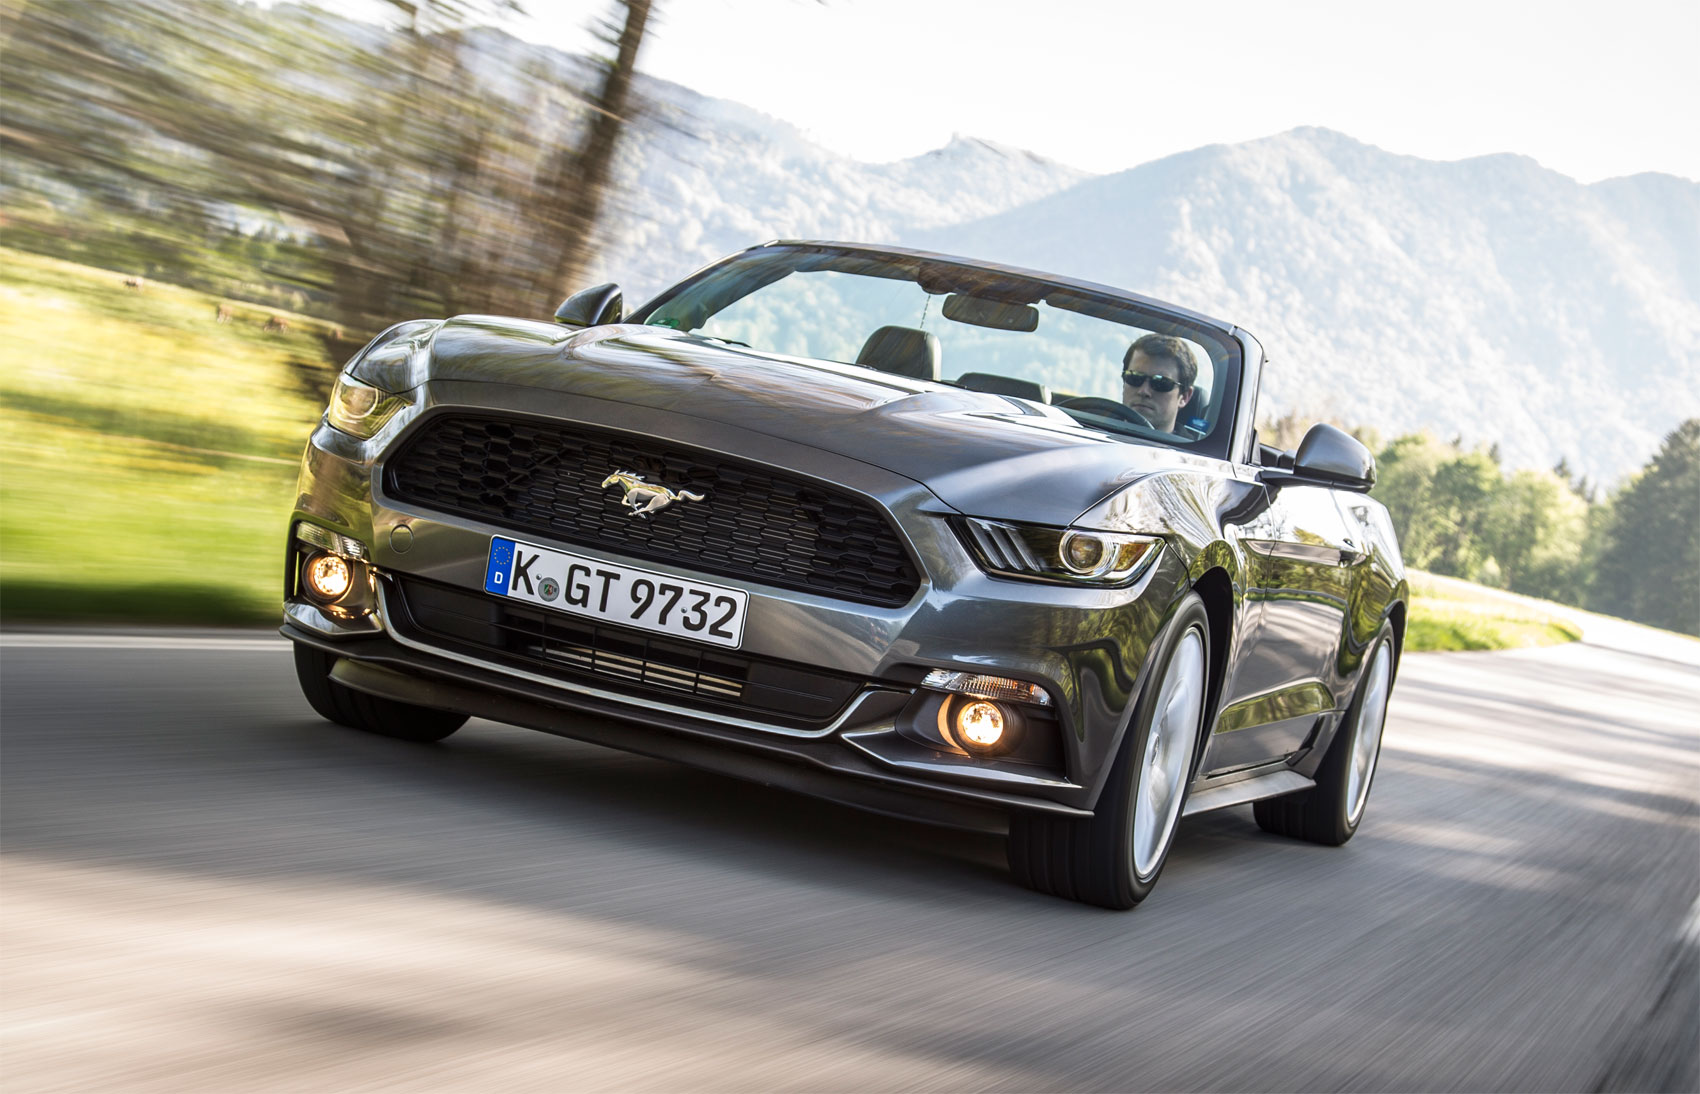 The Ford Mustang – Not Only A Superb Drivers Car But Economical Too!